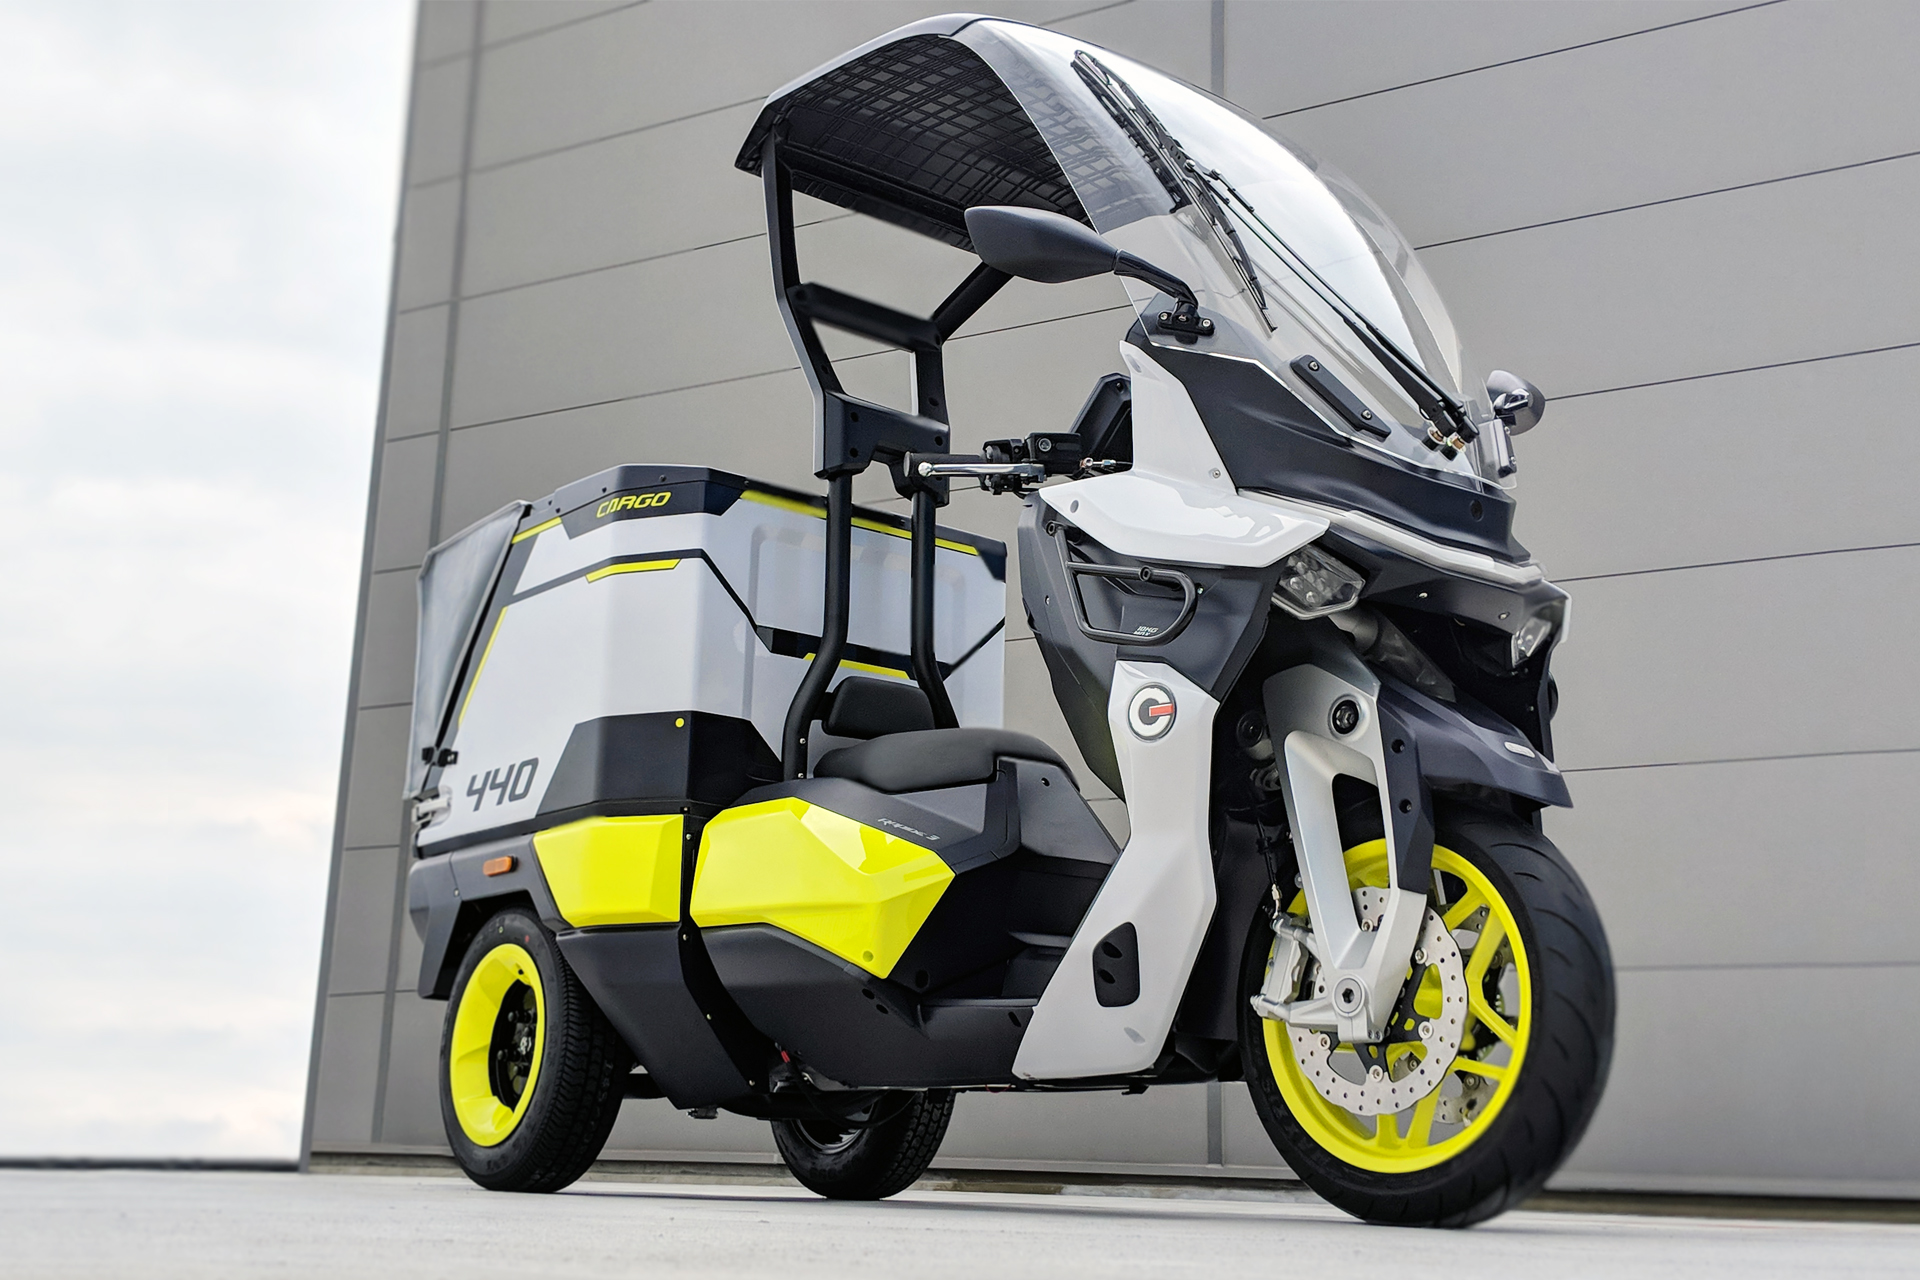 Wheel, Car, Motorcycle accessories, Motorcycle Helmets, Motorcycle Fairings, Motorcycle, Scooter, Motor vehicle, Automotive design, Product design, car, motor vehicle, yellow, vehicle, car, mode of transport, automotive design, wheel, motorcycle, automotive wheel system, product